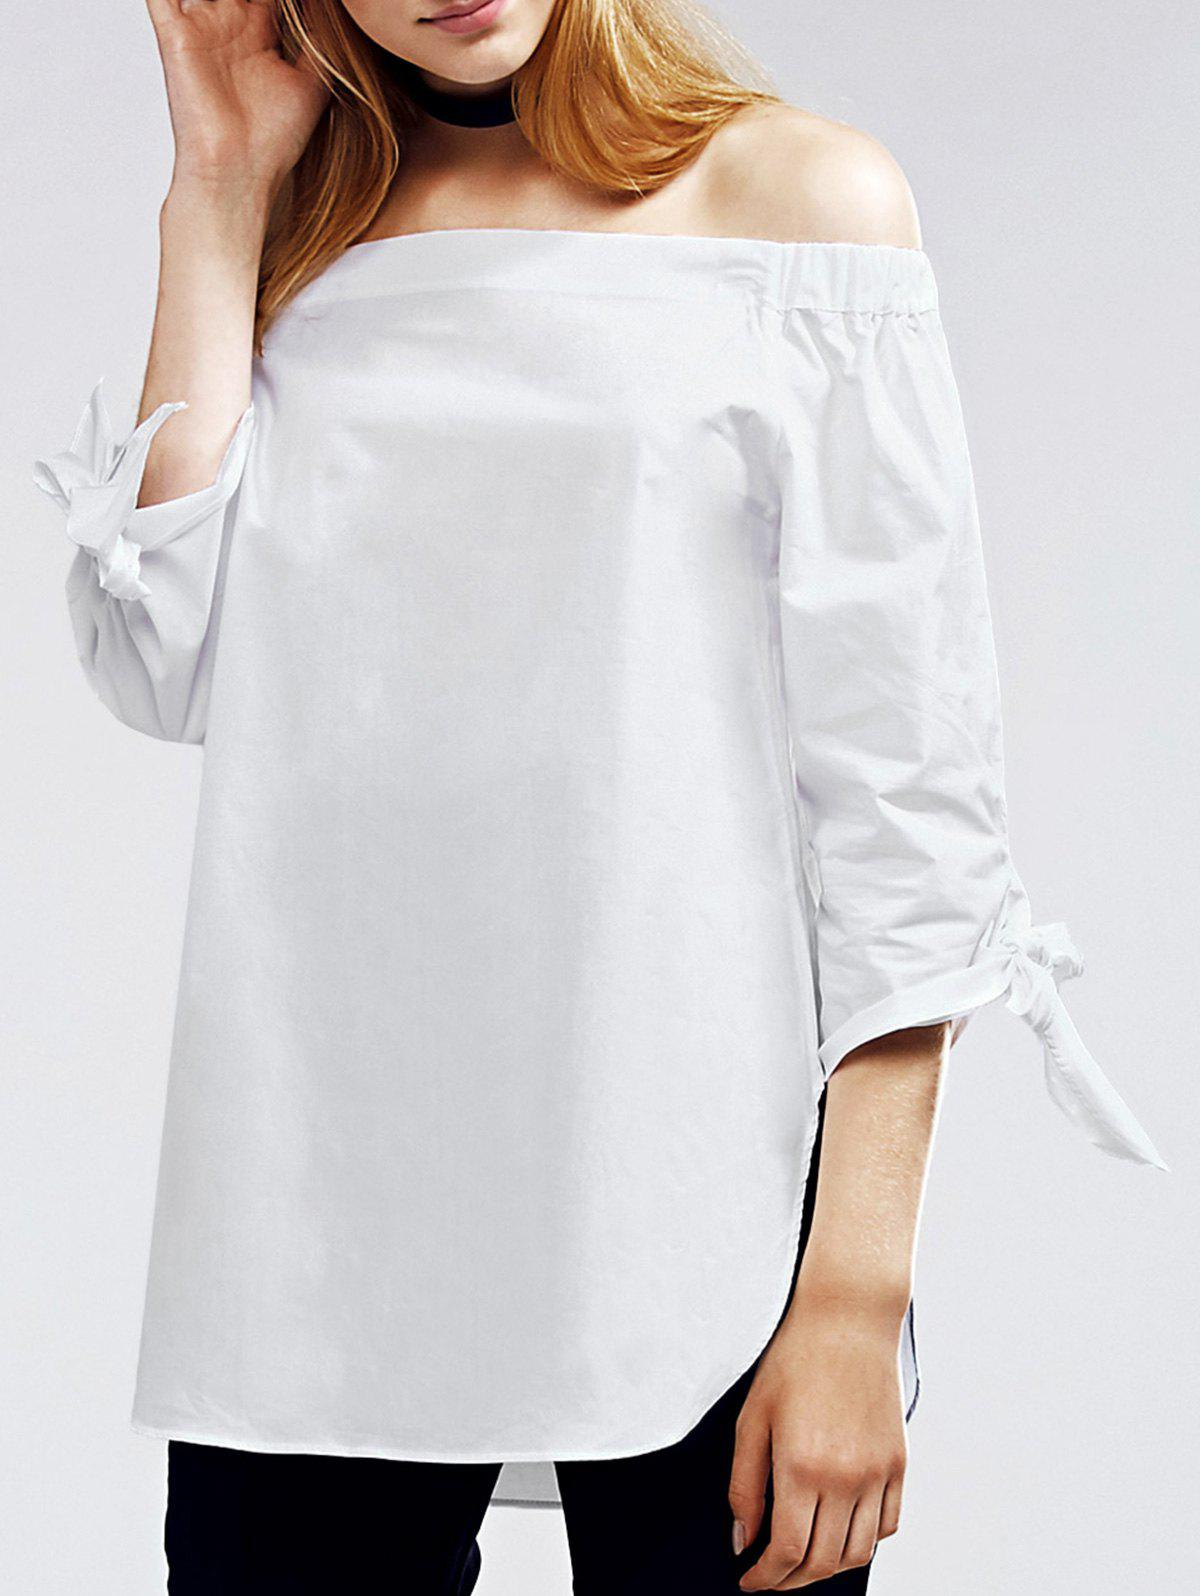 White Off The Shoulder Self Tie Blouse - WHITE S